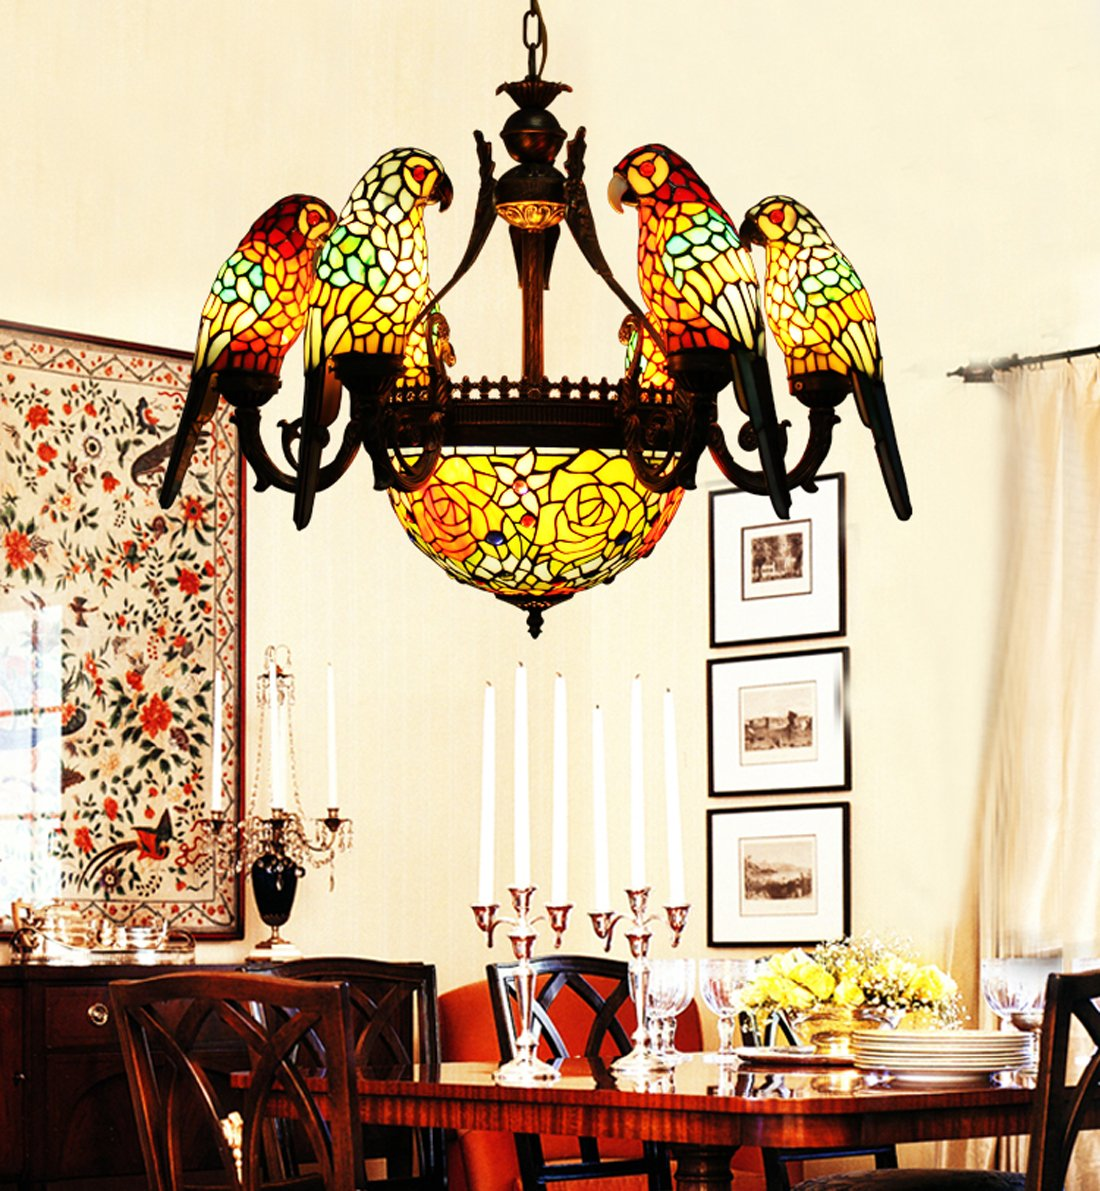 swag louis dp birds robert com w tiffany pendant amazon plug chandeliers in tropical style lighting